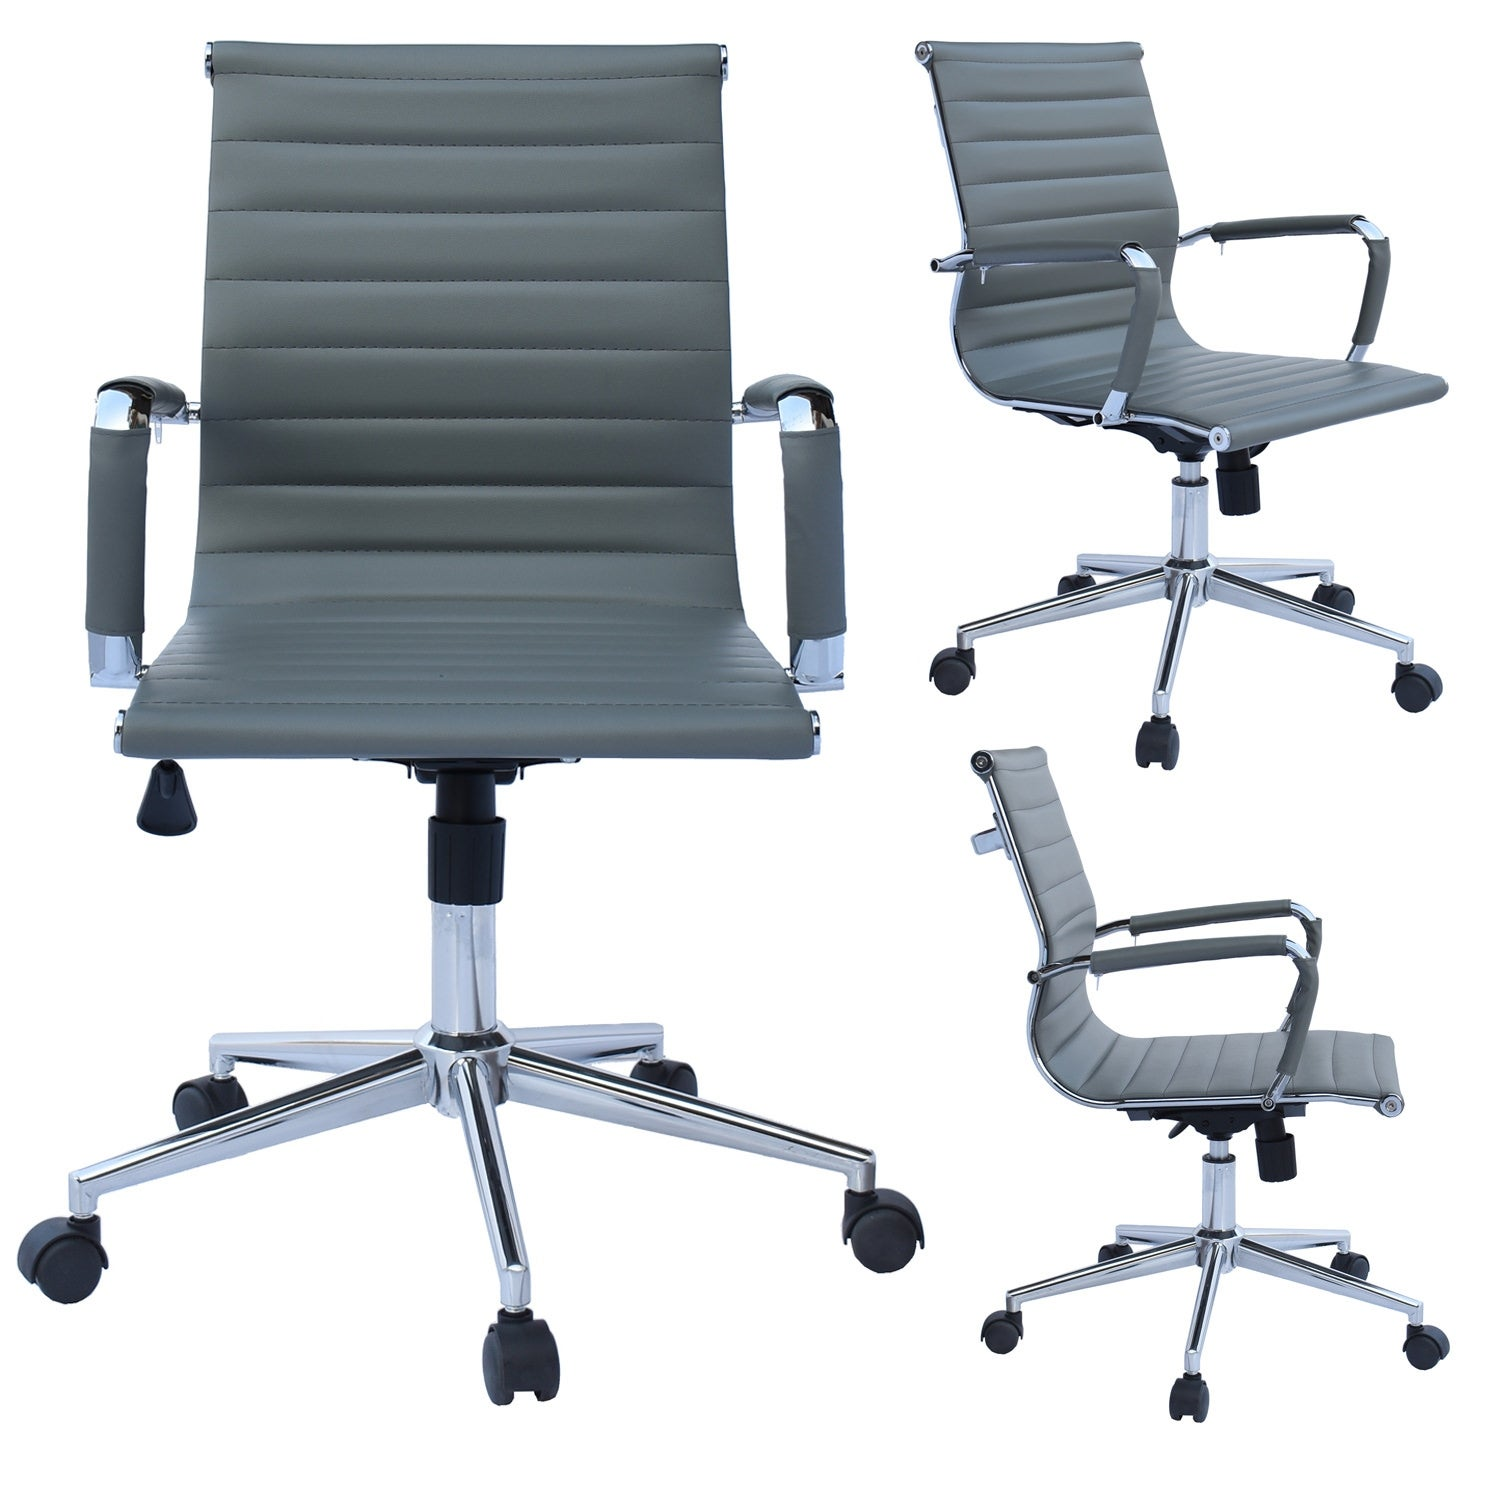 Shop Black Friday Deals On Mid Century Office Chair With Wheels Ergonomic Executive Pu Leather Arm Rest Tilt Adjustable Height Swivel Task Computer Gray Overstock 26234319